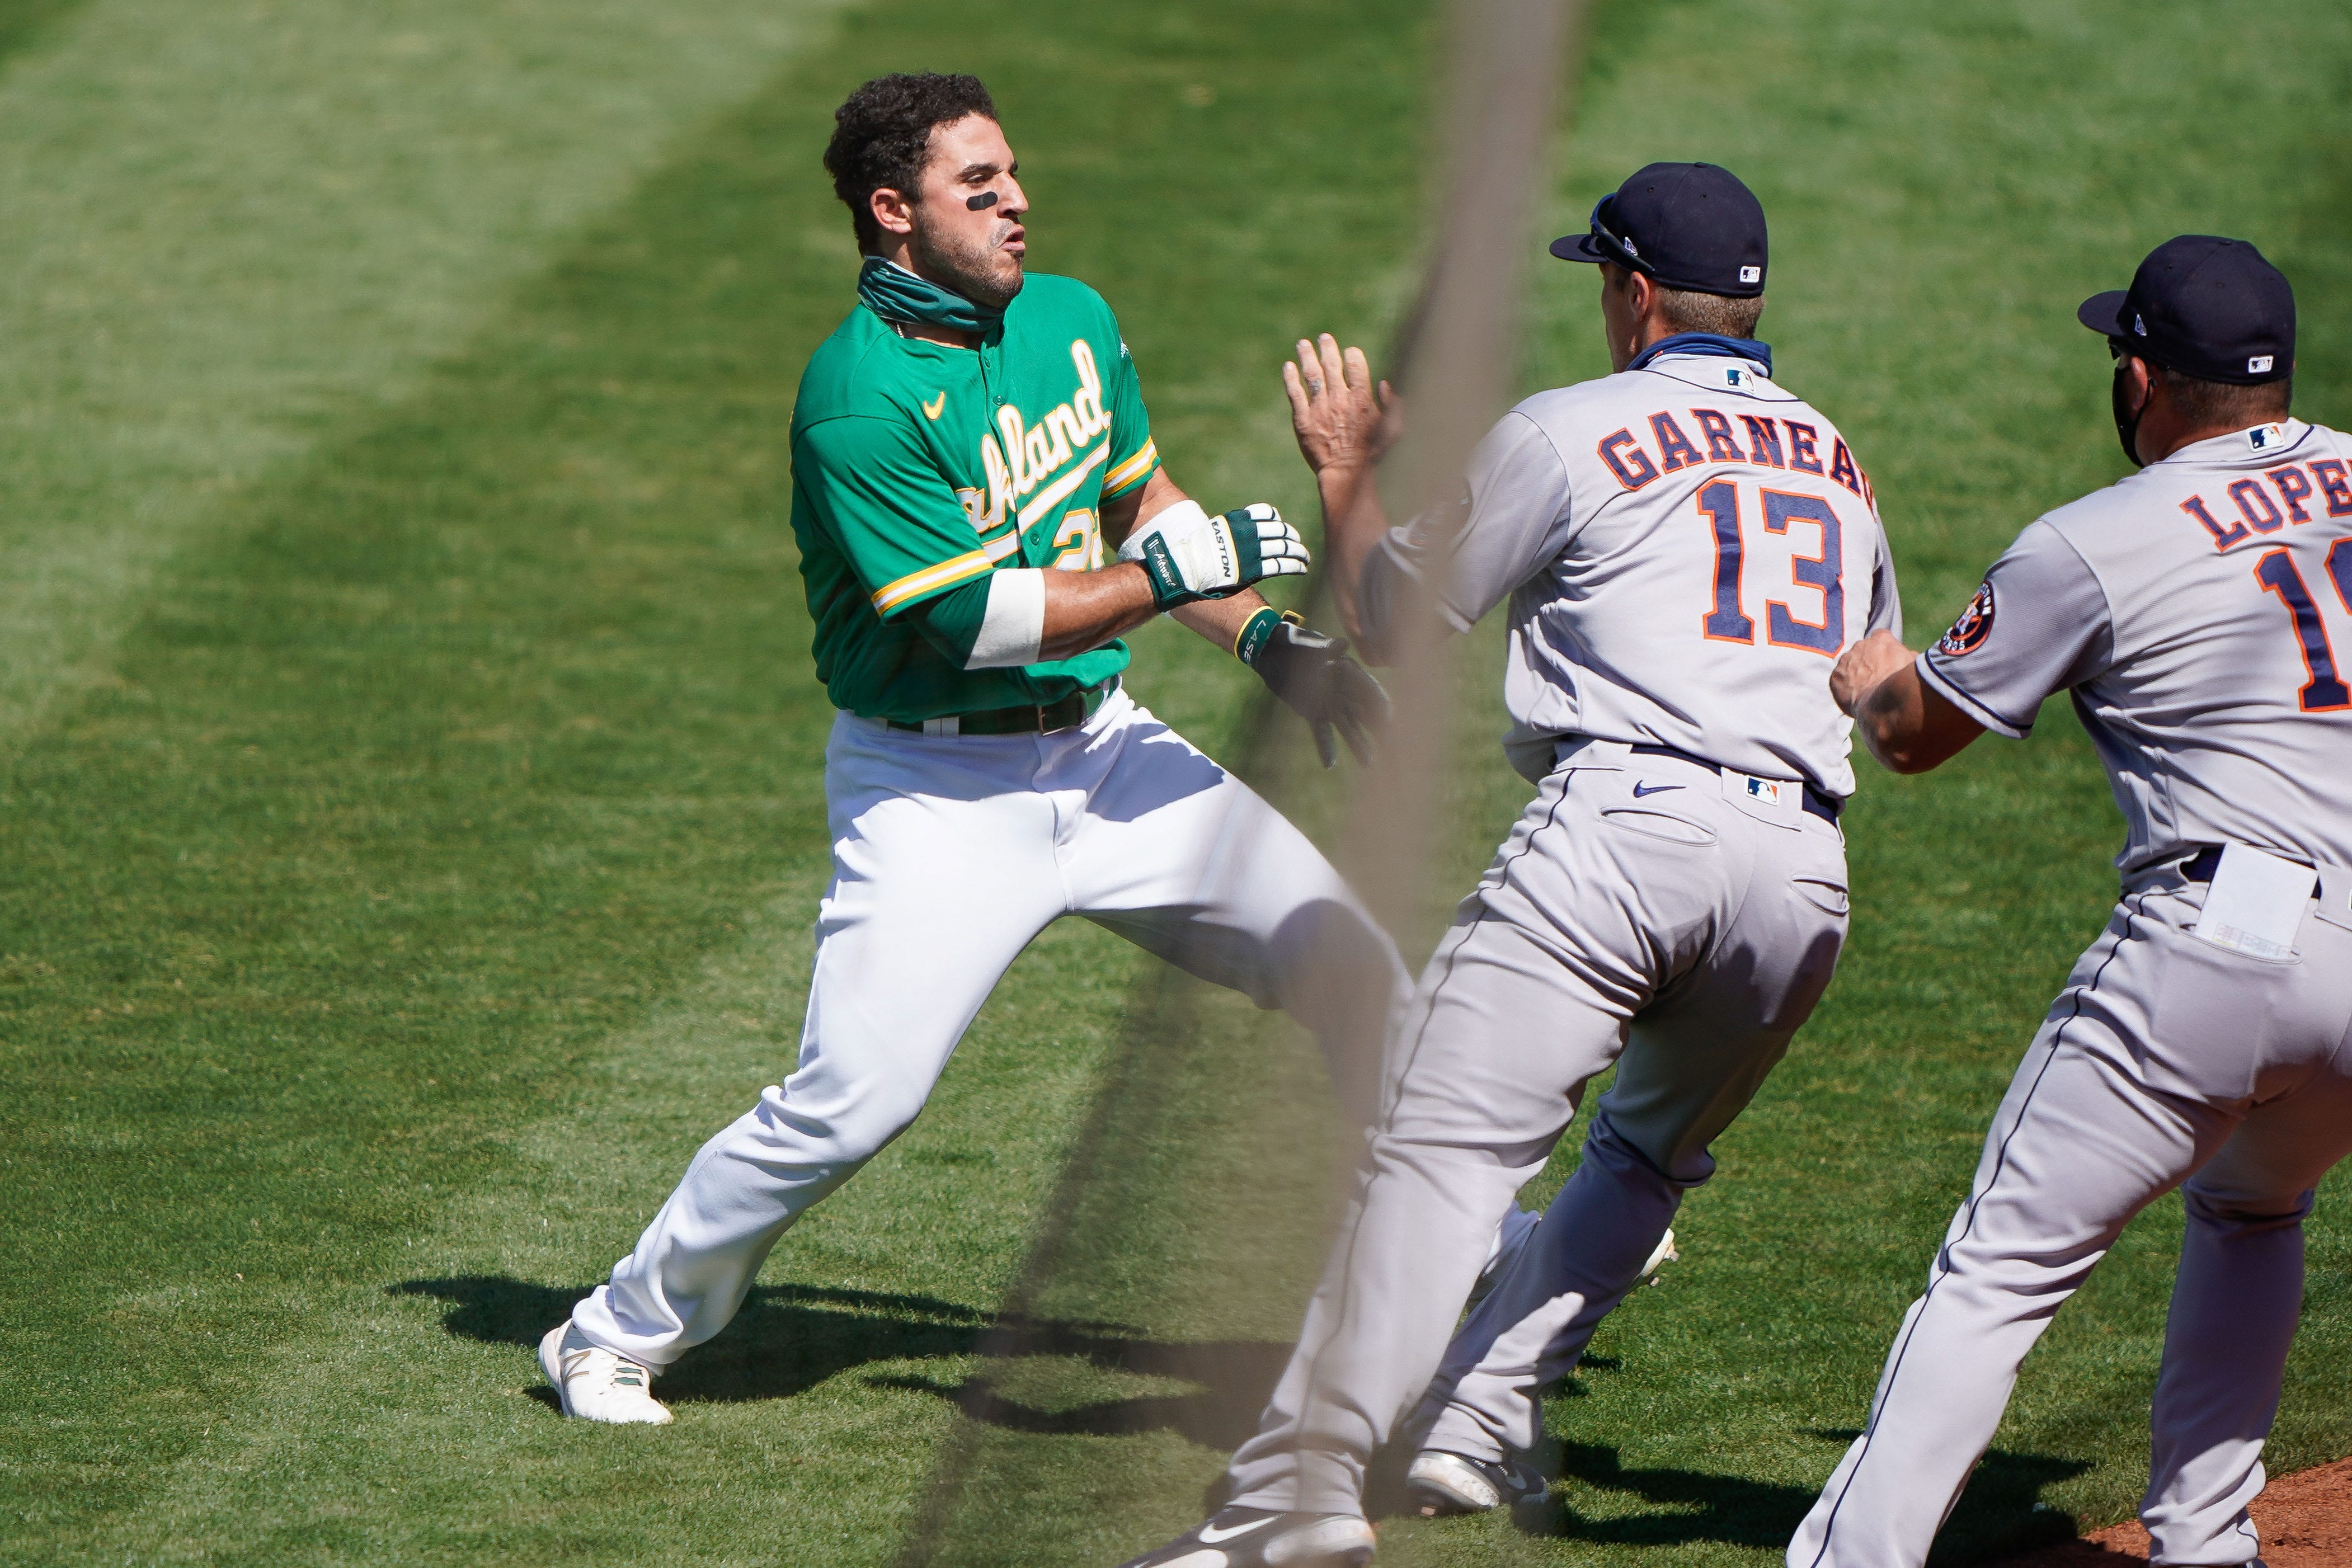 A's outfielder Ramon Laureano suspended six games, Astros coach Alex Cintrón gets 20 after brawl